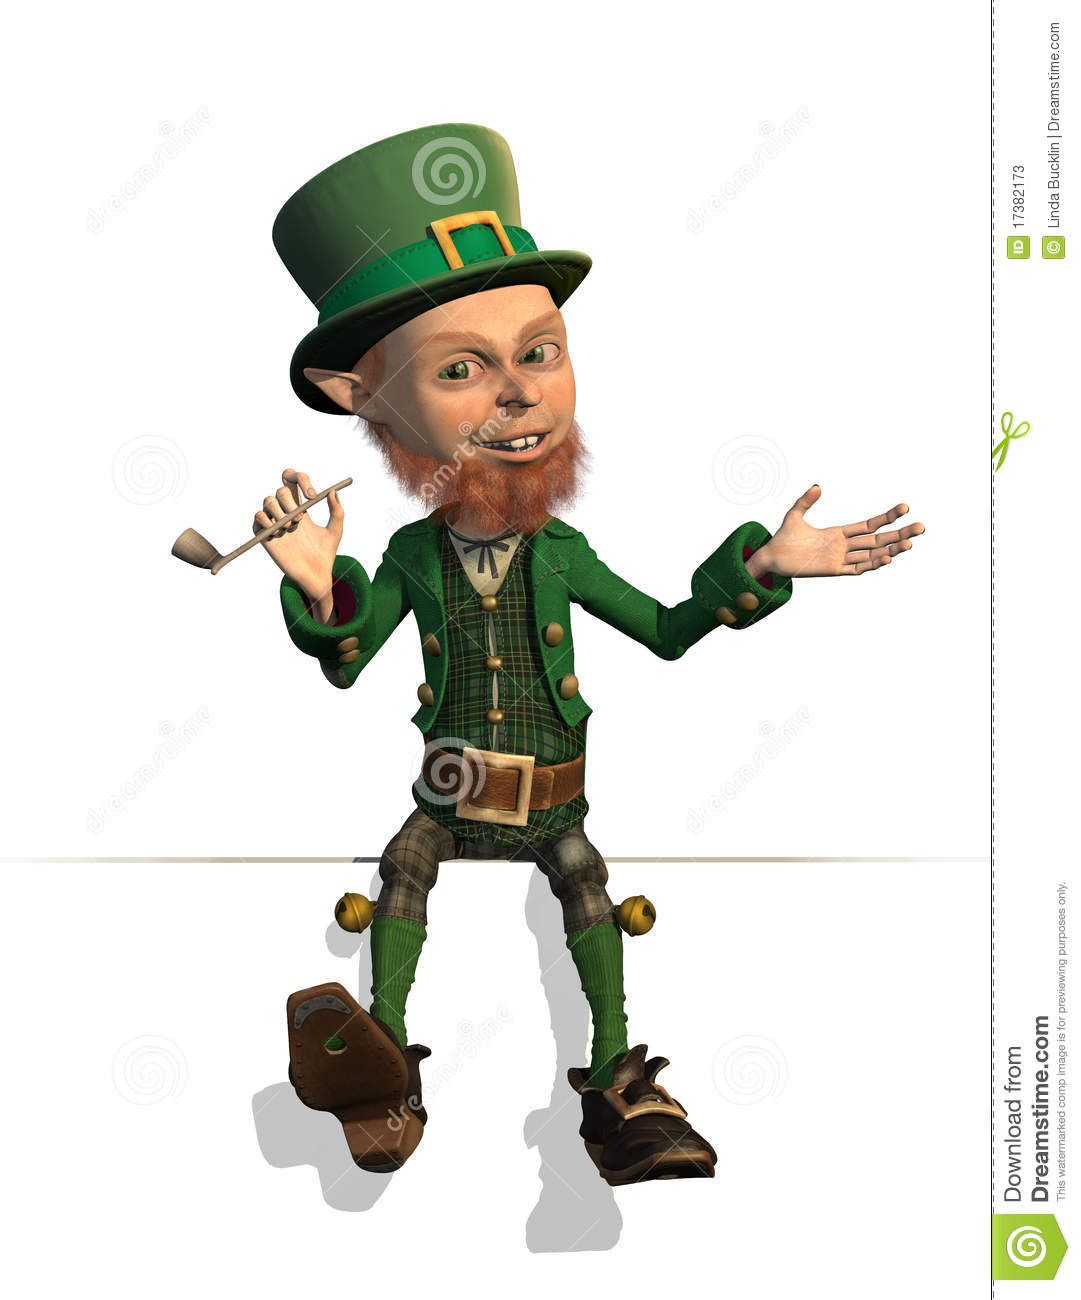 friendly leprechaun is sitting on an edge or border - 3D render.